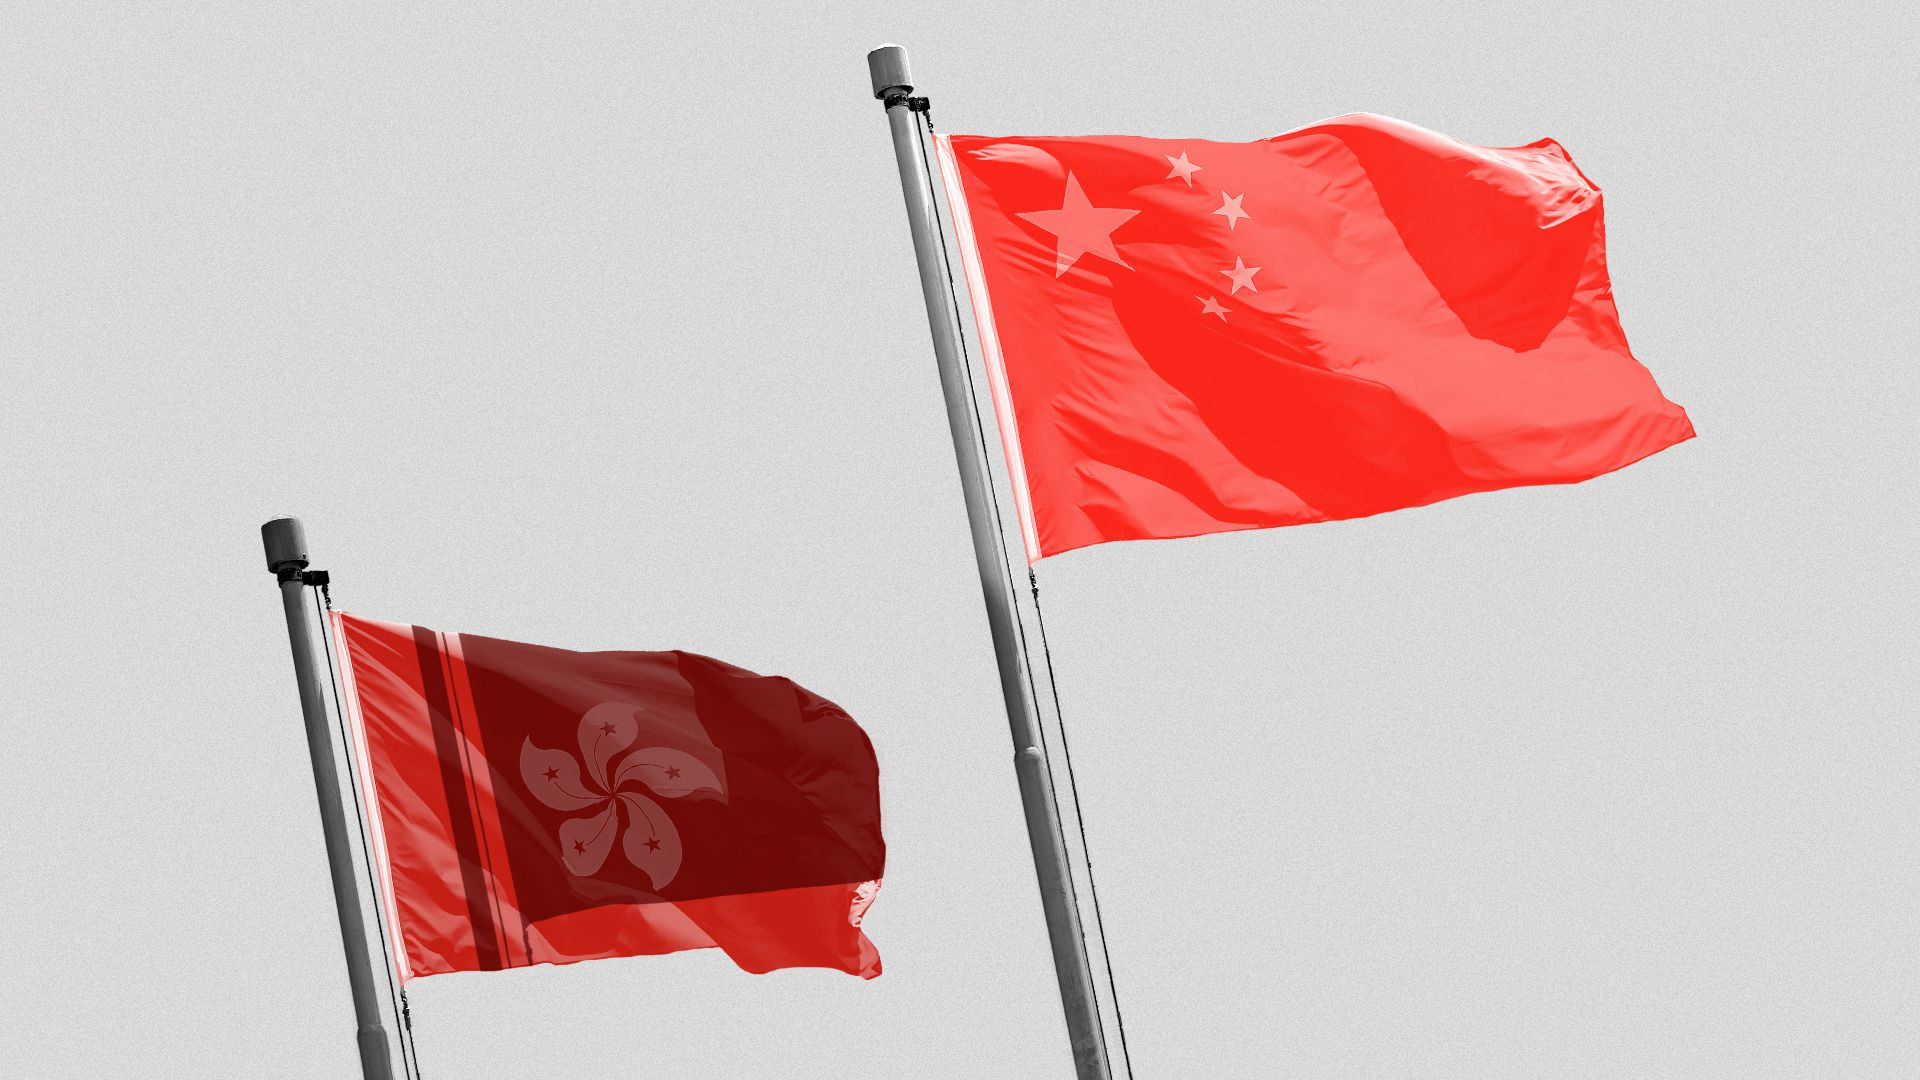 Illustration of the Chinese flag casting a shadow over the Hong Kong flag